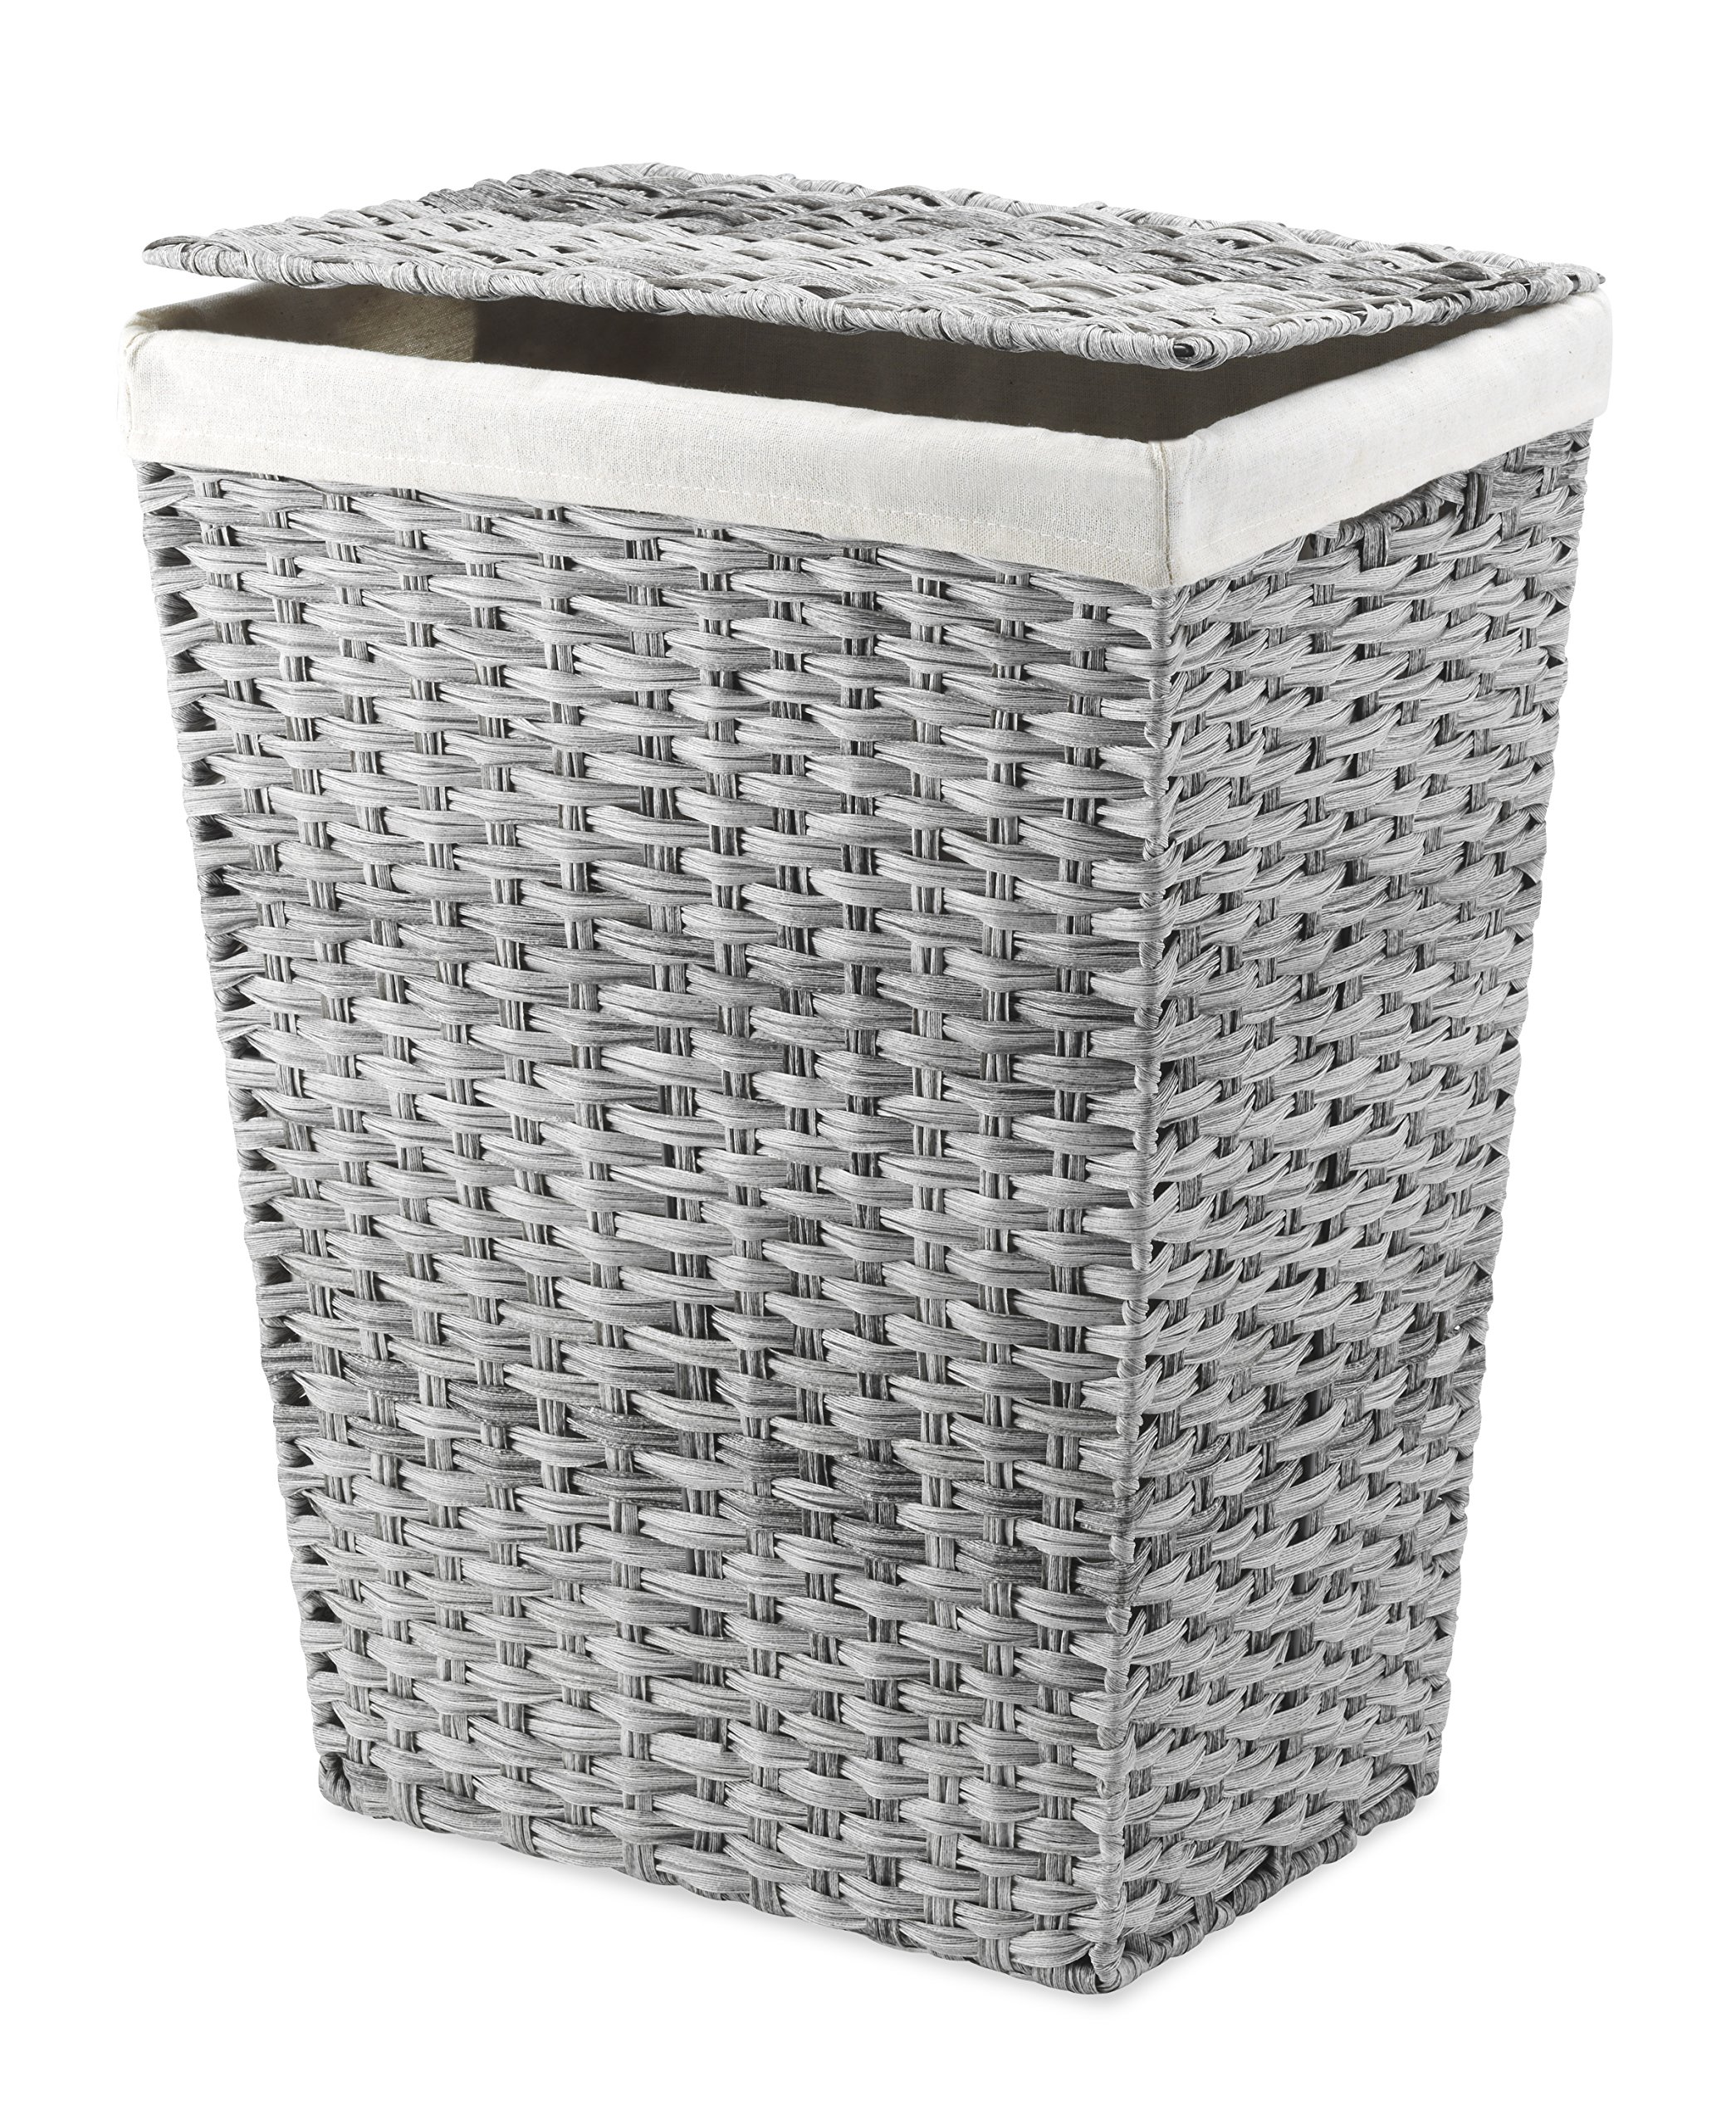 Greenstell Handwoven Laundry Hamper With 2 Removable Liner Bag Synthetic Rattan Laundry Basket With Lid And Handles Foldable And Easy To Install Gray Standard Size Laundry Hampers Home Kitchen